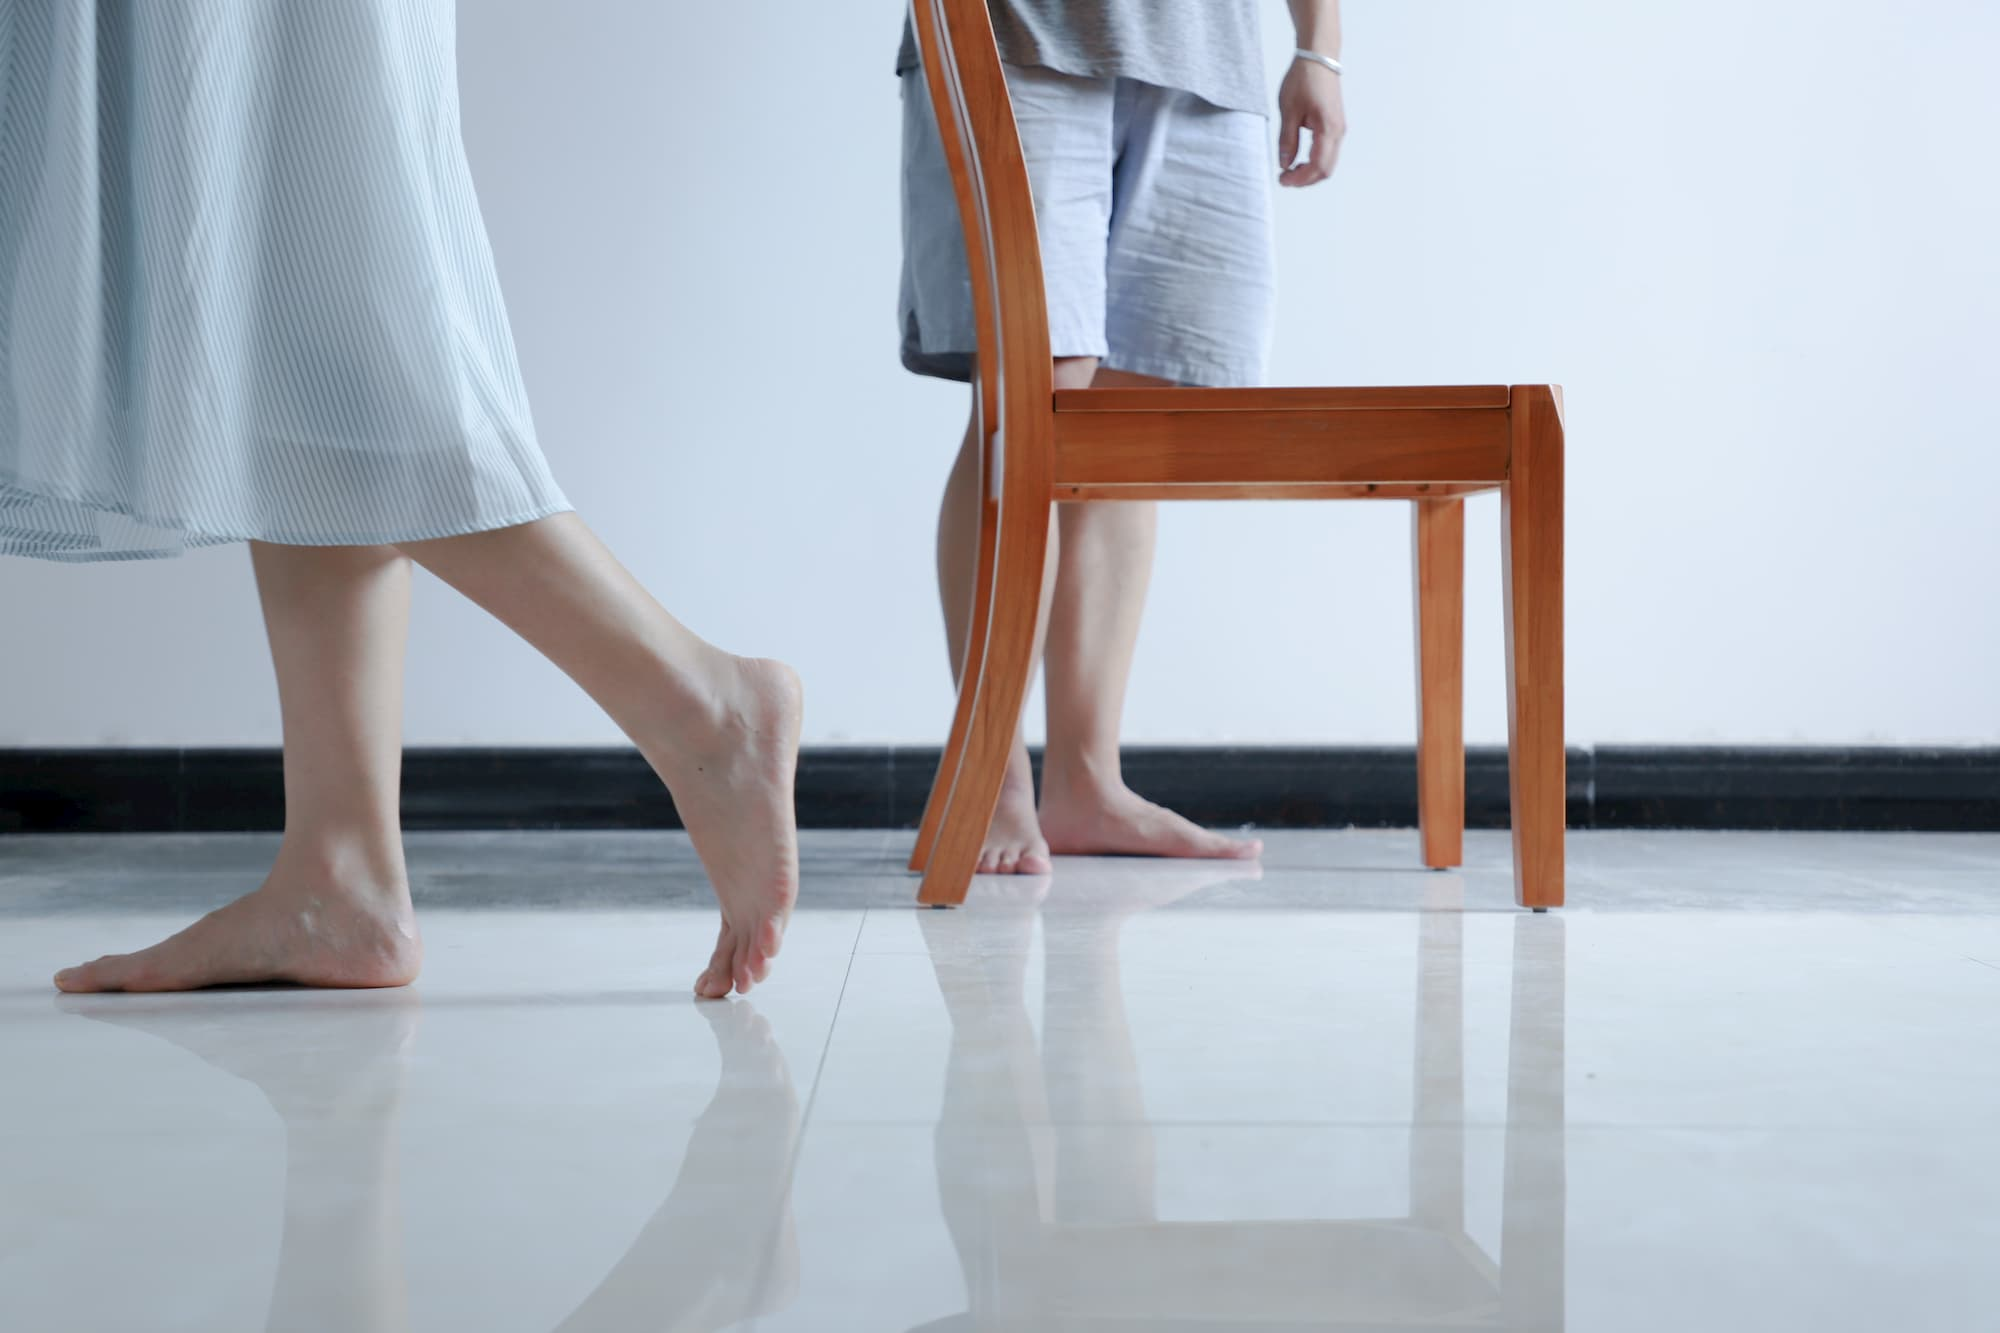 Two people and a chair standing on a smooth, reflective floor